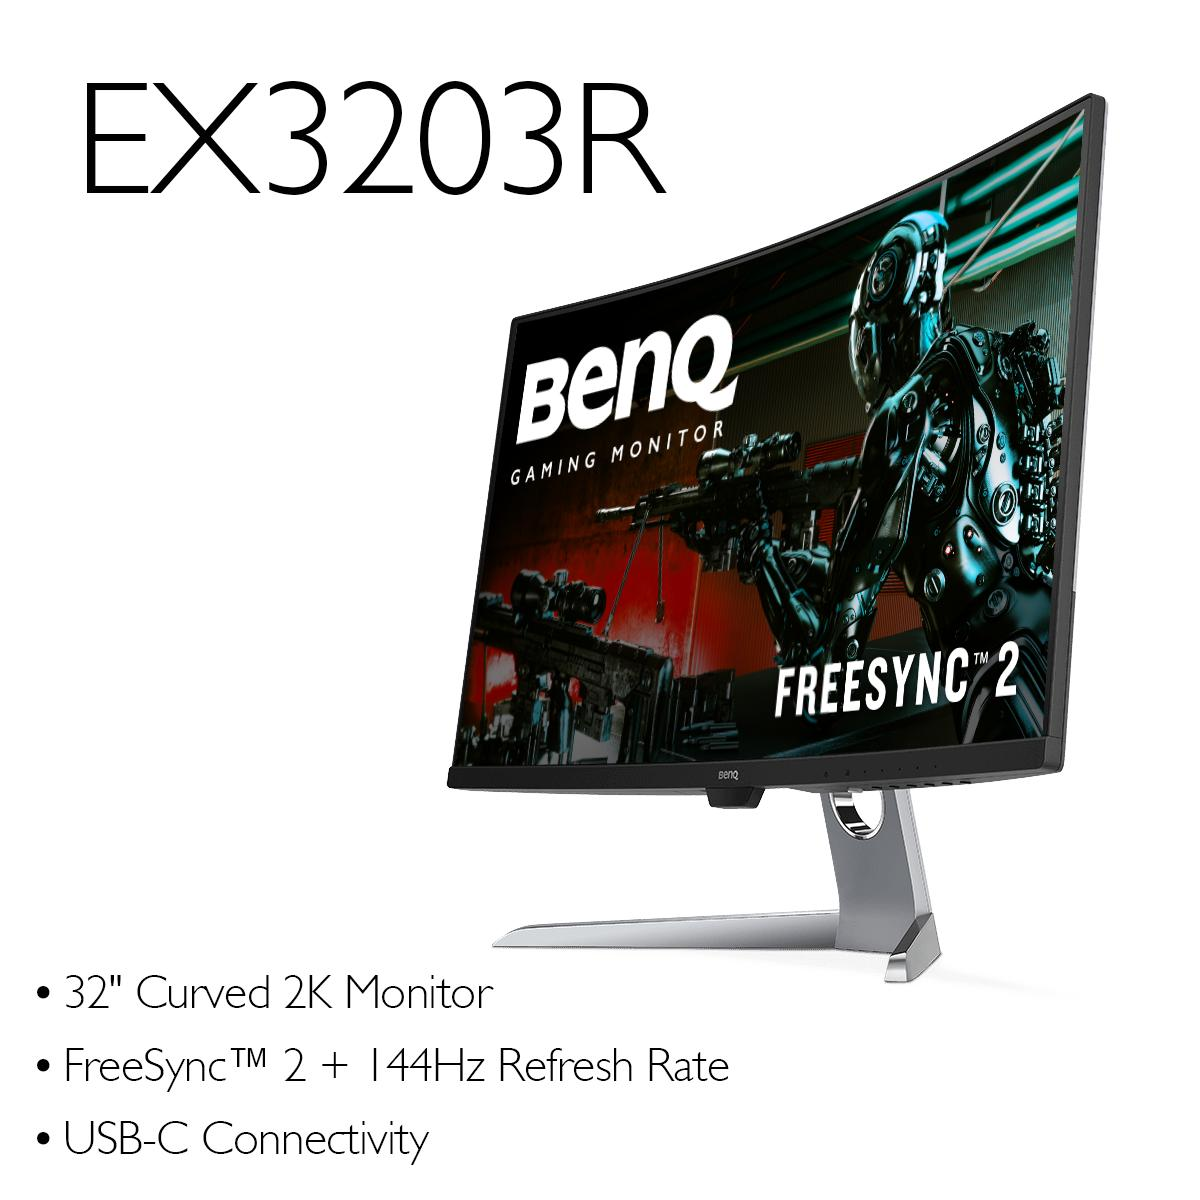 Our stunning curved #FreeSync monitors are on sale for a limited time. Upgrade your gaming, home, or office setup with a new BenQ monitor!  See more of our gaming and entertainment monitors here: http://bit.ly/2SC75eq  #gaming #monitor #sale